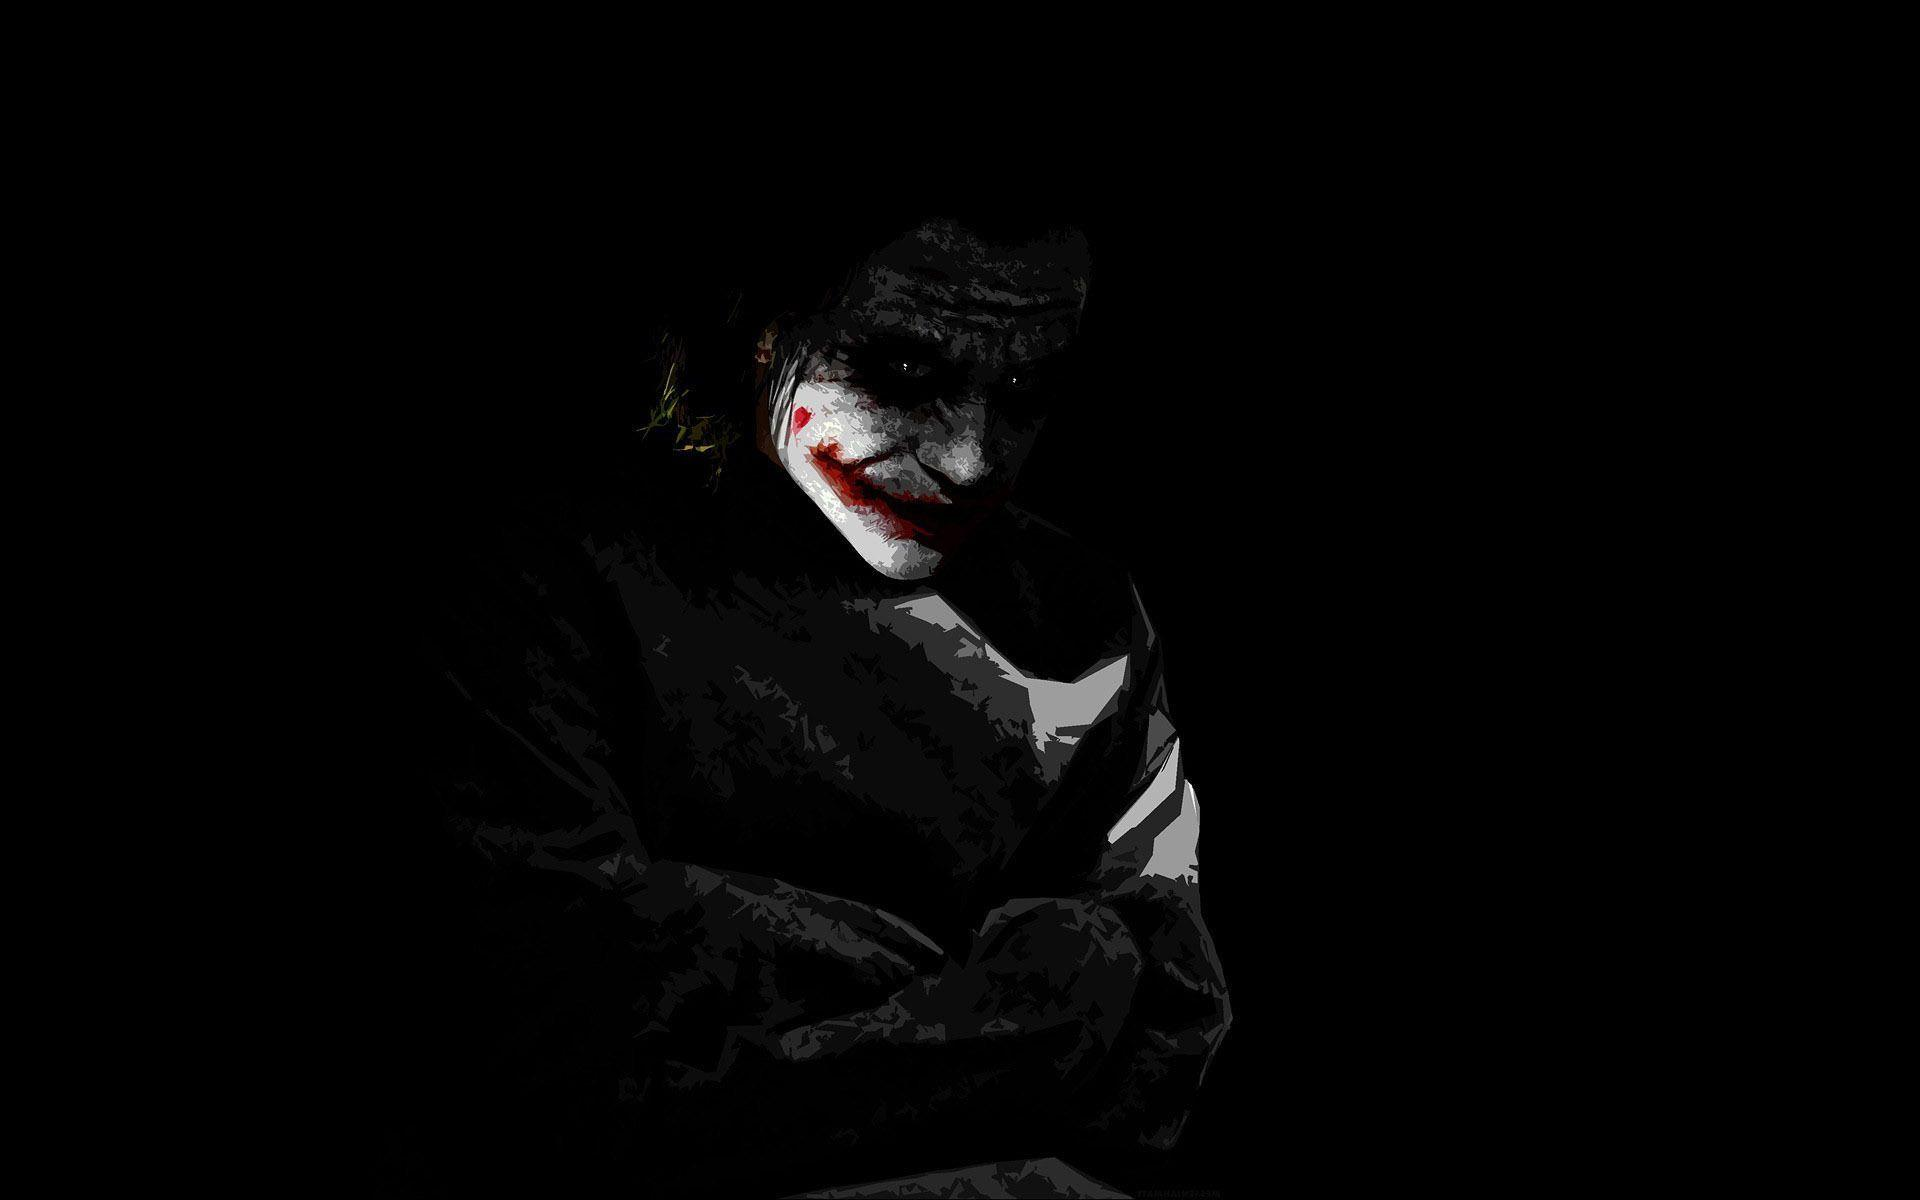 Joker Hd Wallpapers: The Joker Heath Ledger Wallpapers